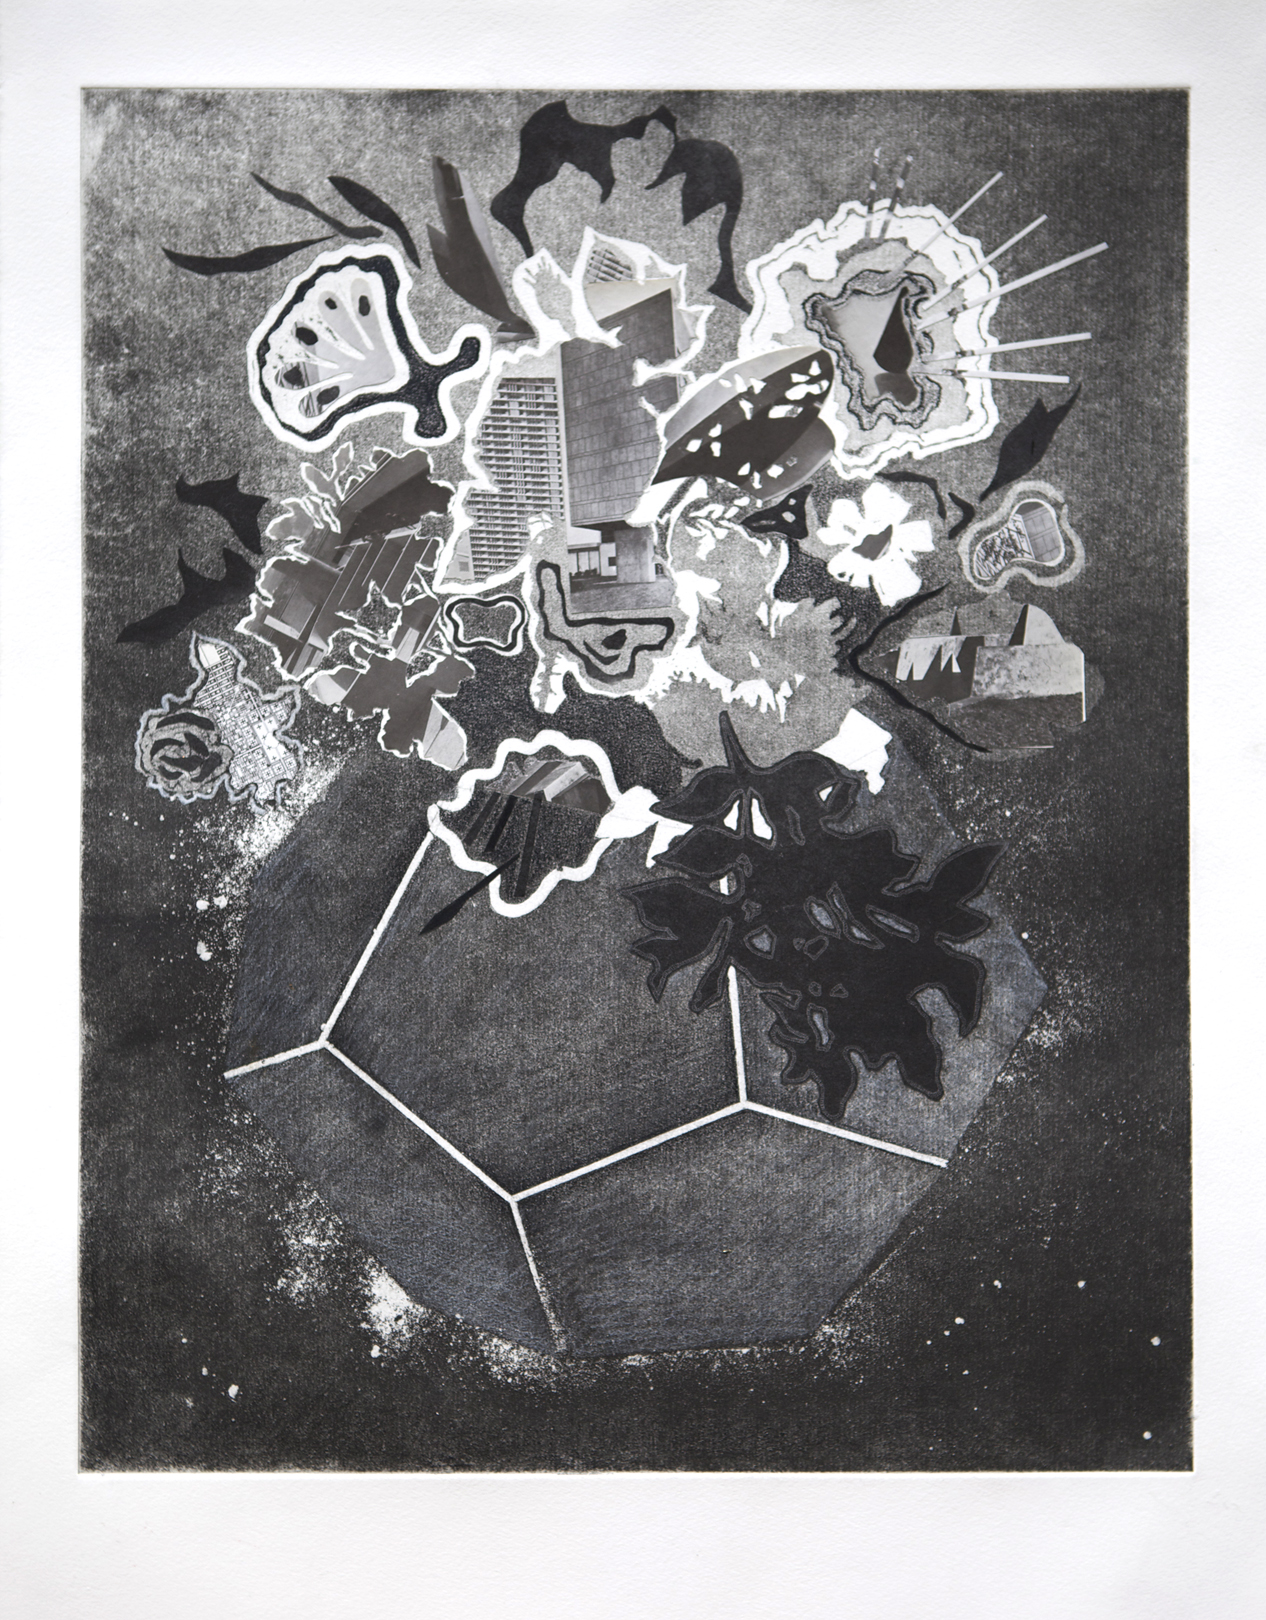 Composition #1124  (2014), Intaglio, collage and wax pencil on paper, Image 15 3/4 x19 3/4 in., sheet 24 x 20 in.